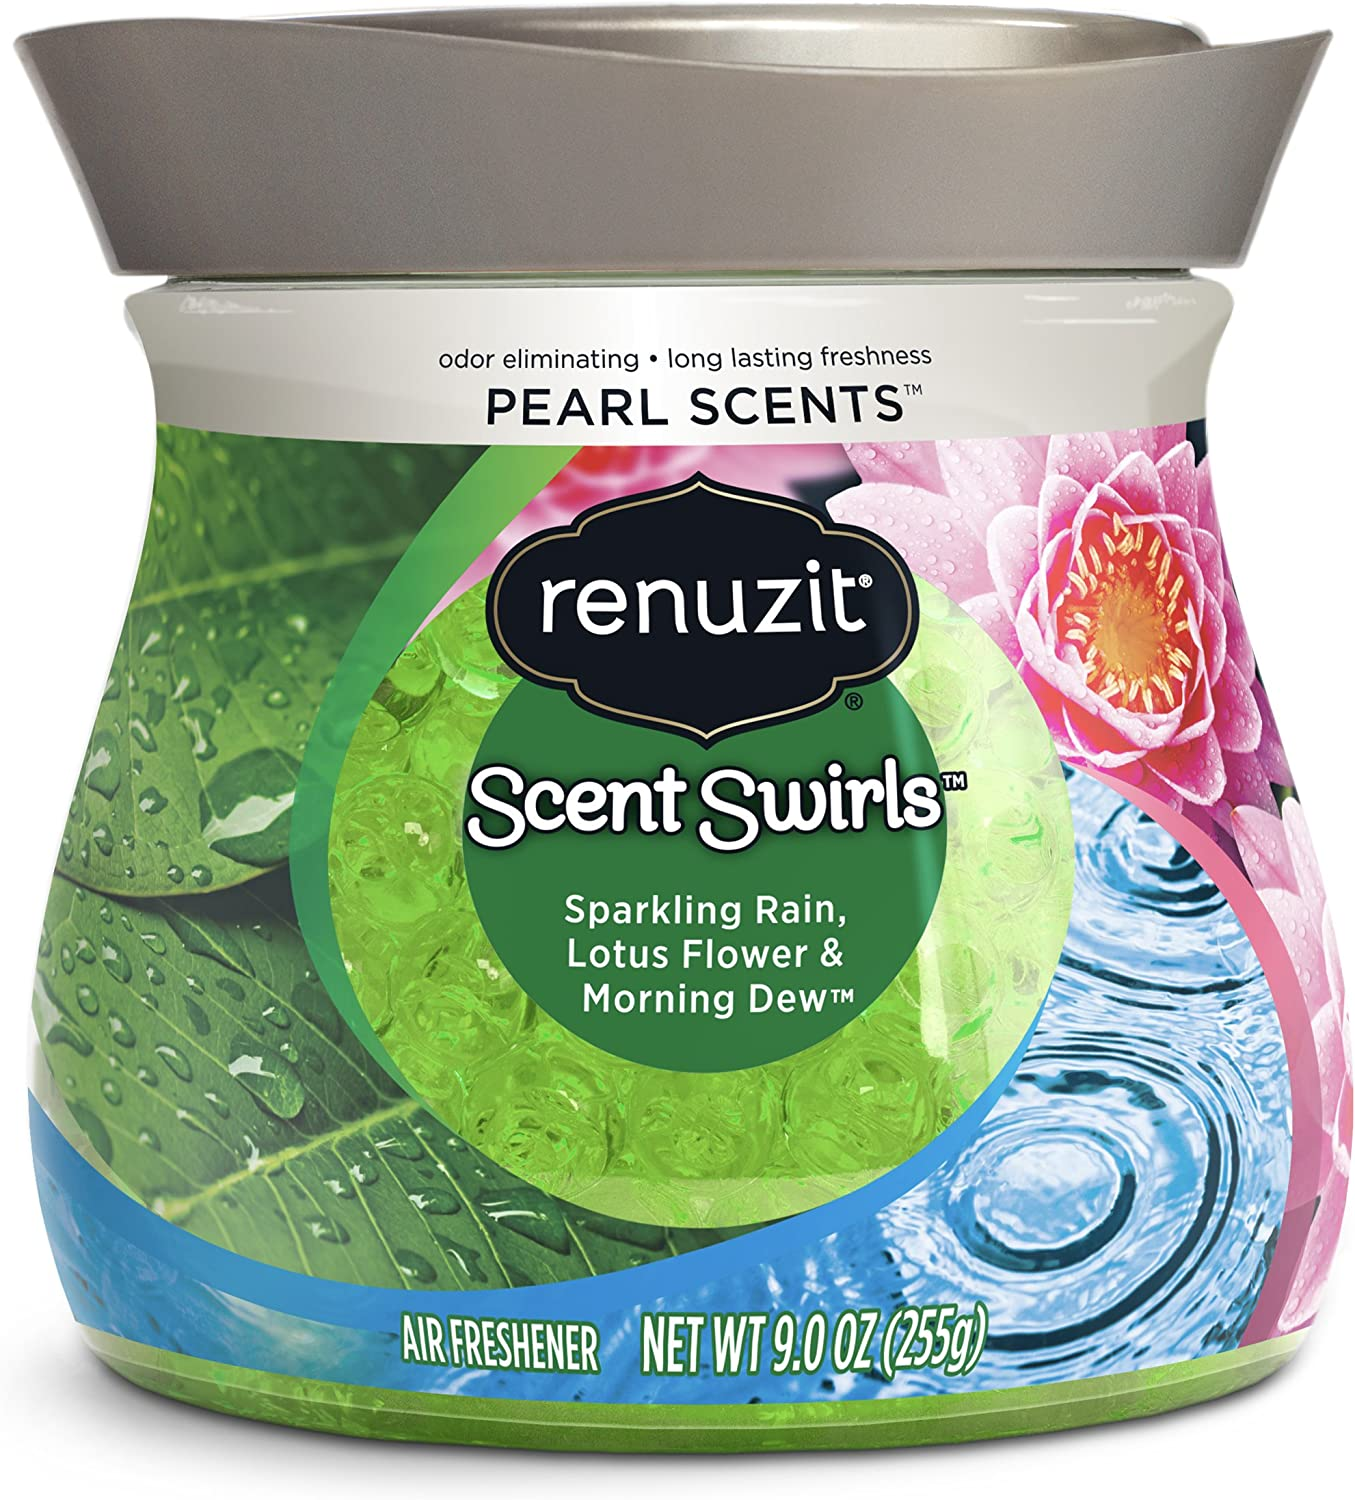 Renuzit Pearl Scents Air Freshener, Sparkling Rain, Lotus Flower & Morning Dew, 9 Ounces (Packaging May Vary)